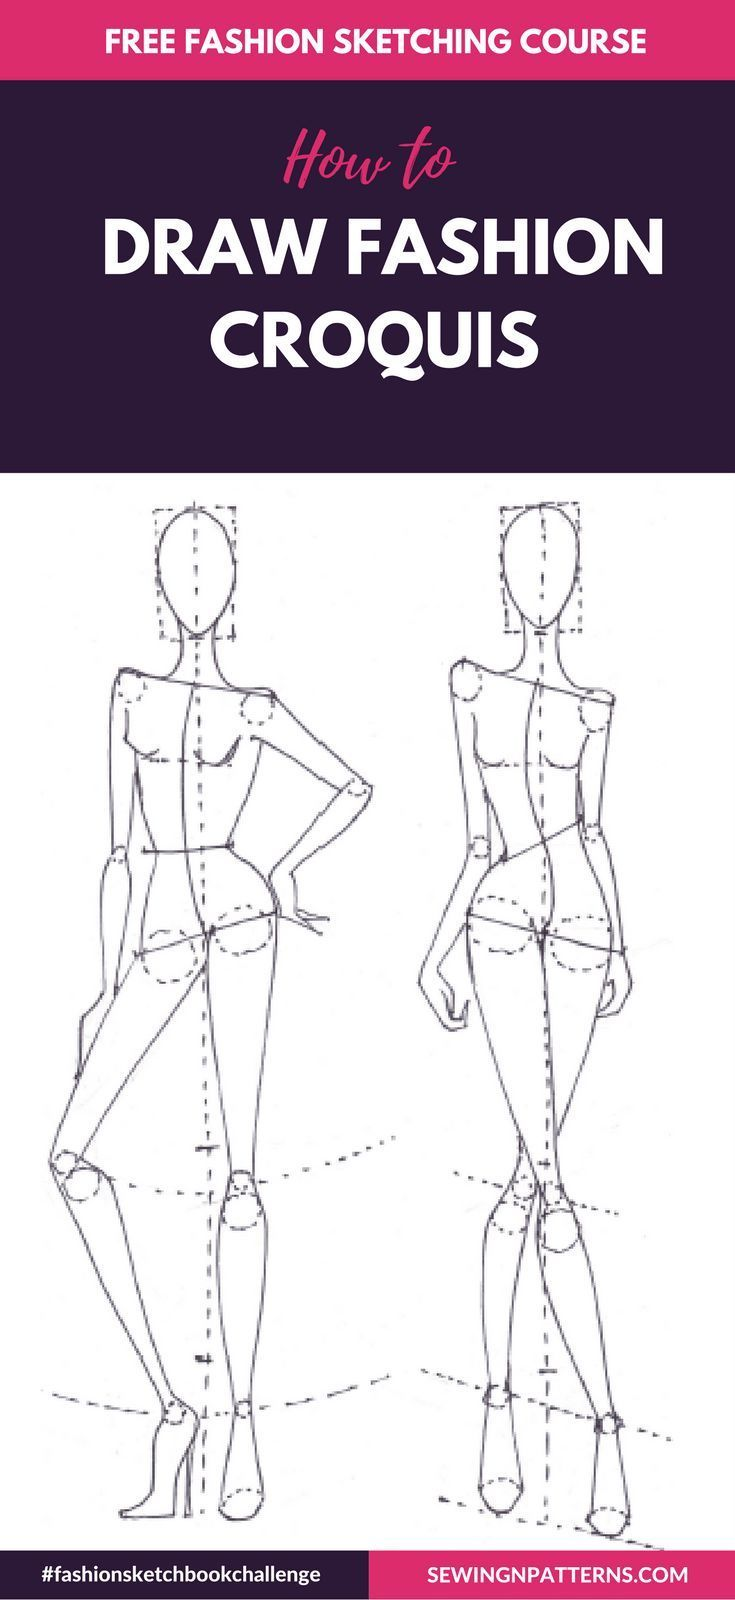 Make fashion sketches like a pro in 30 days